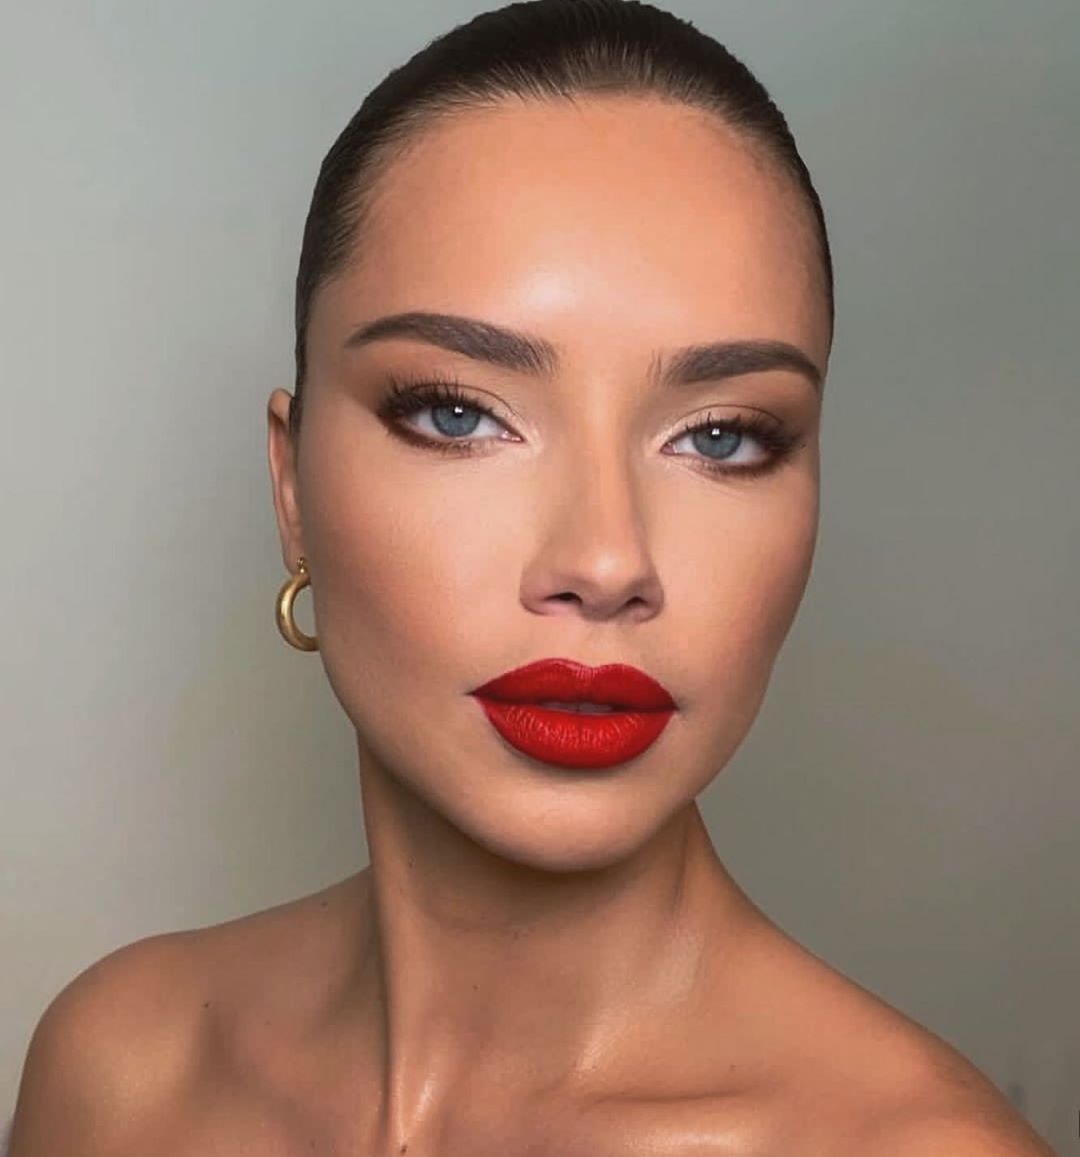 Trendalert On Instagram You Can Never Go Wrong With A Red Lip